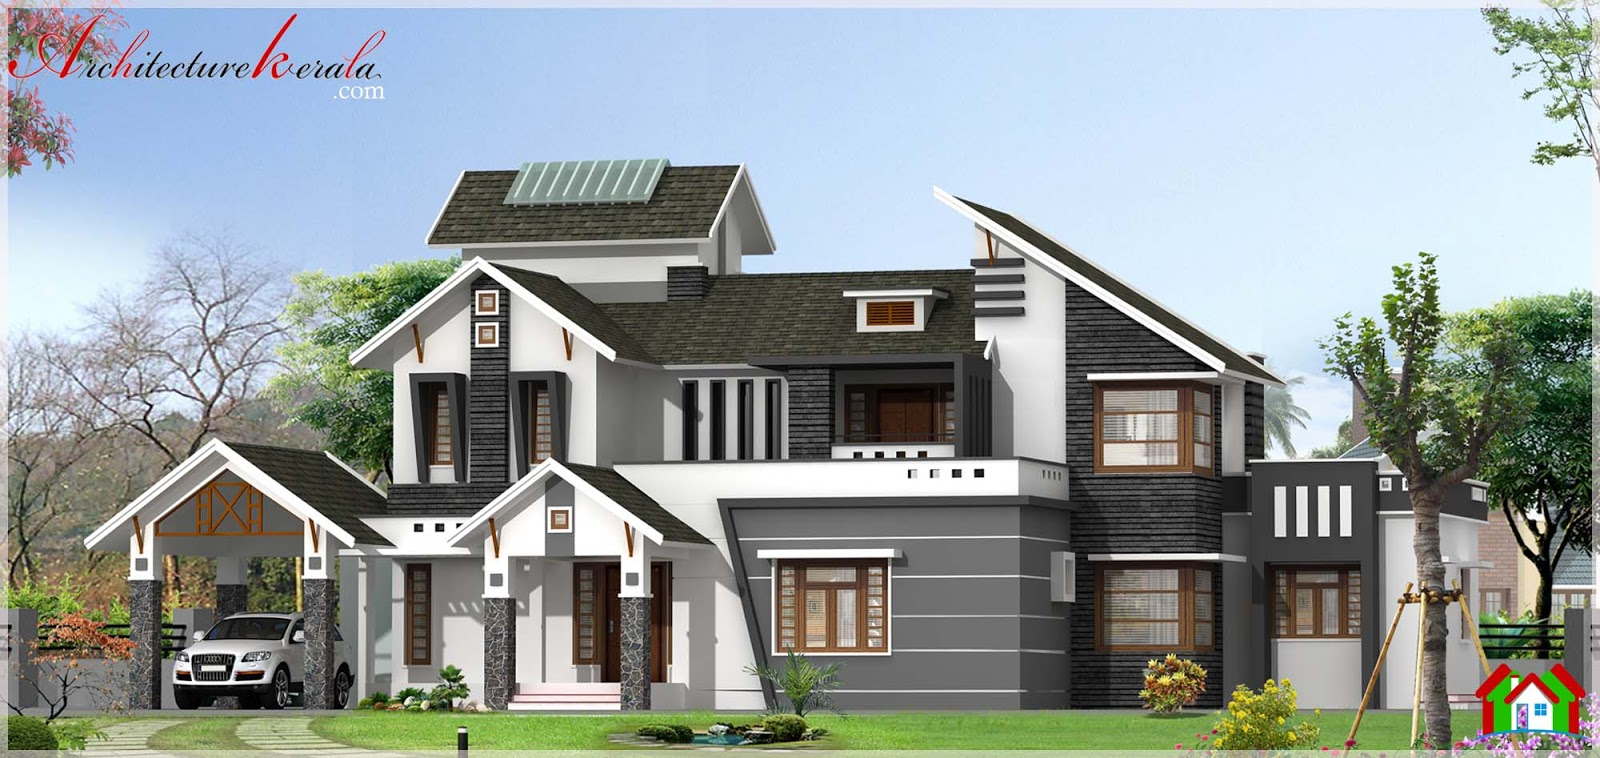 Modern house elevation in 3000 square feet architecture 3000 square foot homes